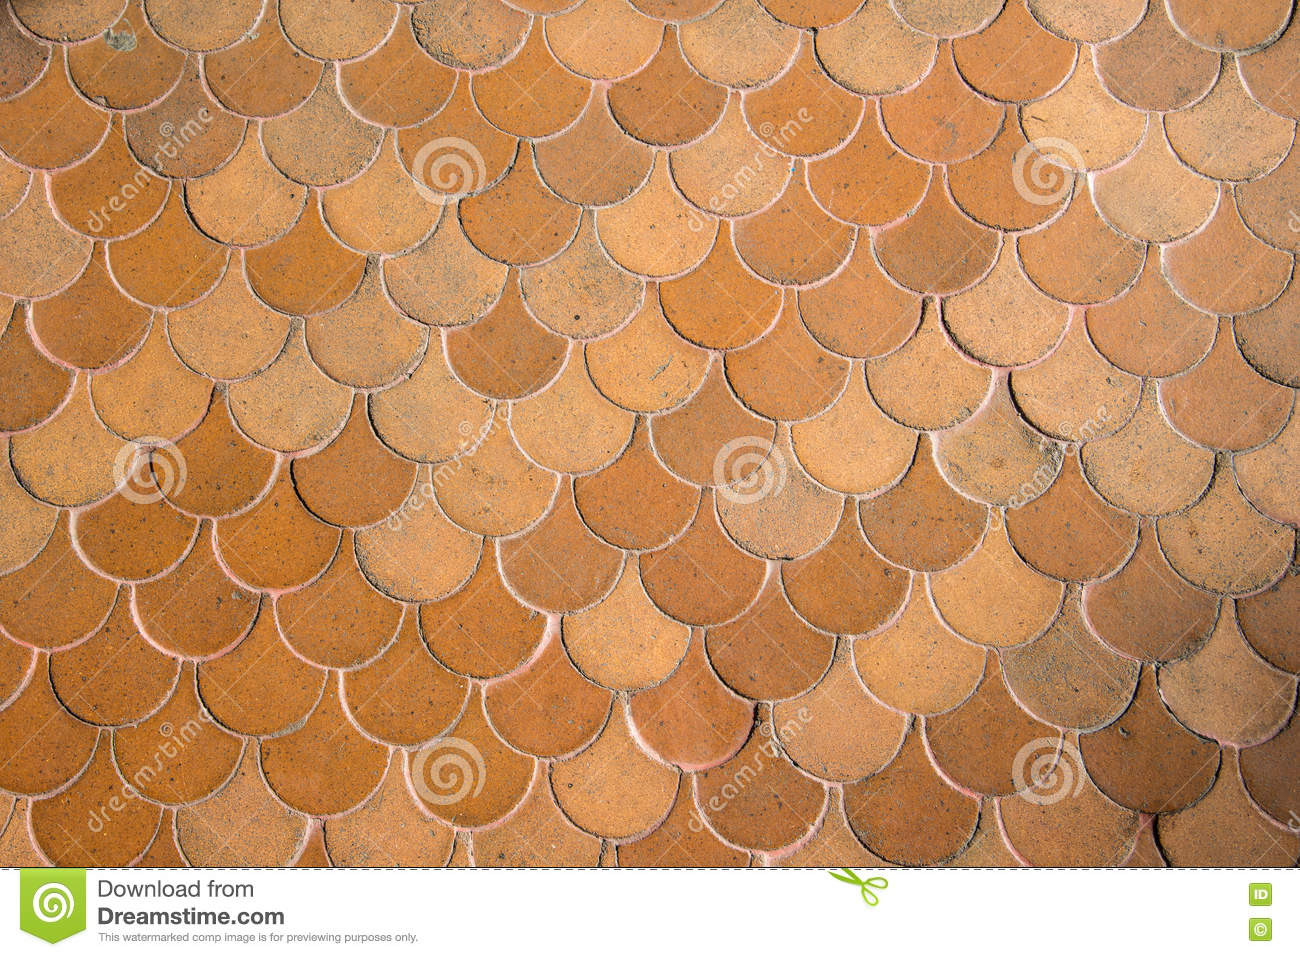 Antiques floor tiles brown semicircle arch form vintage style